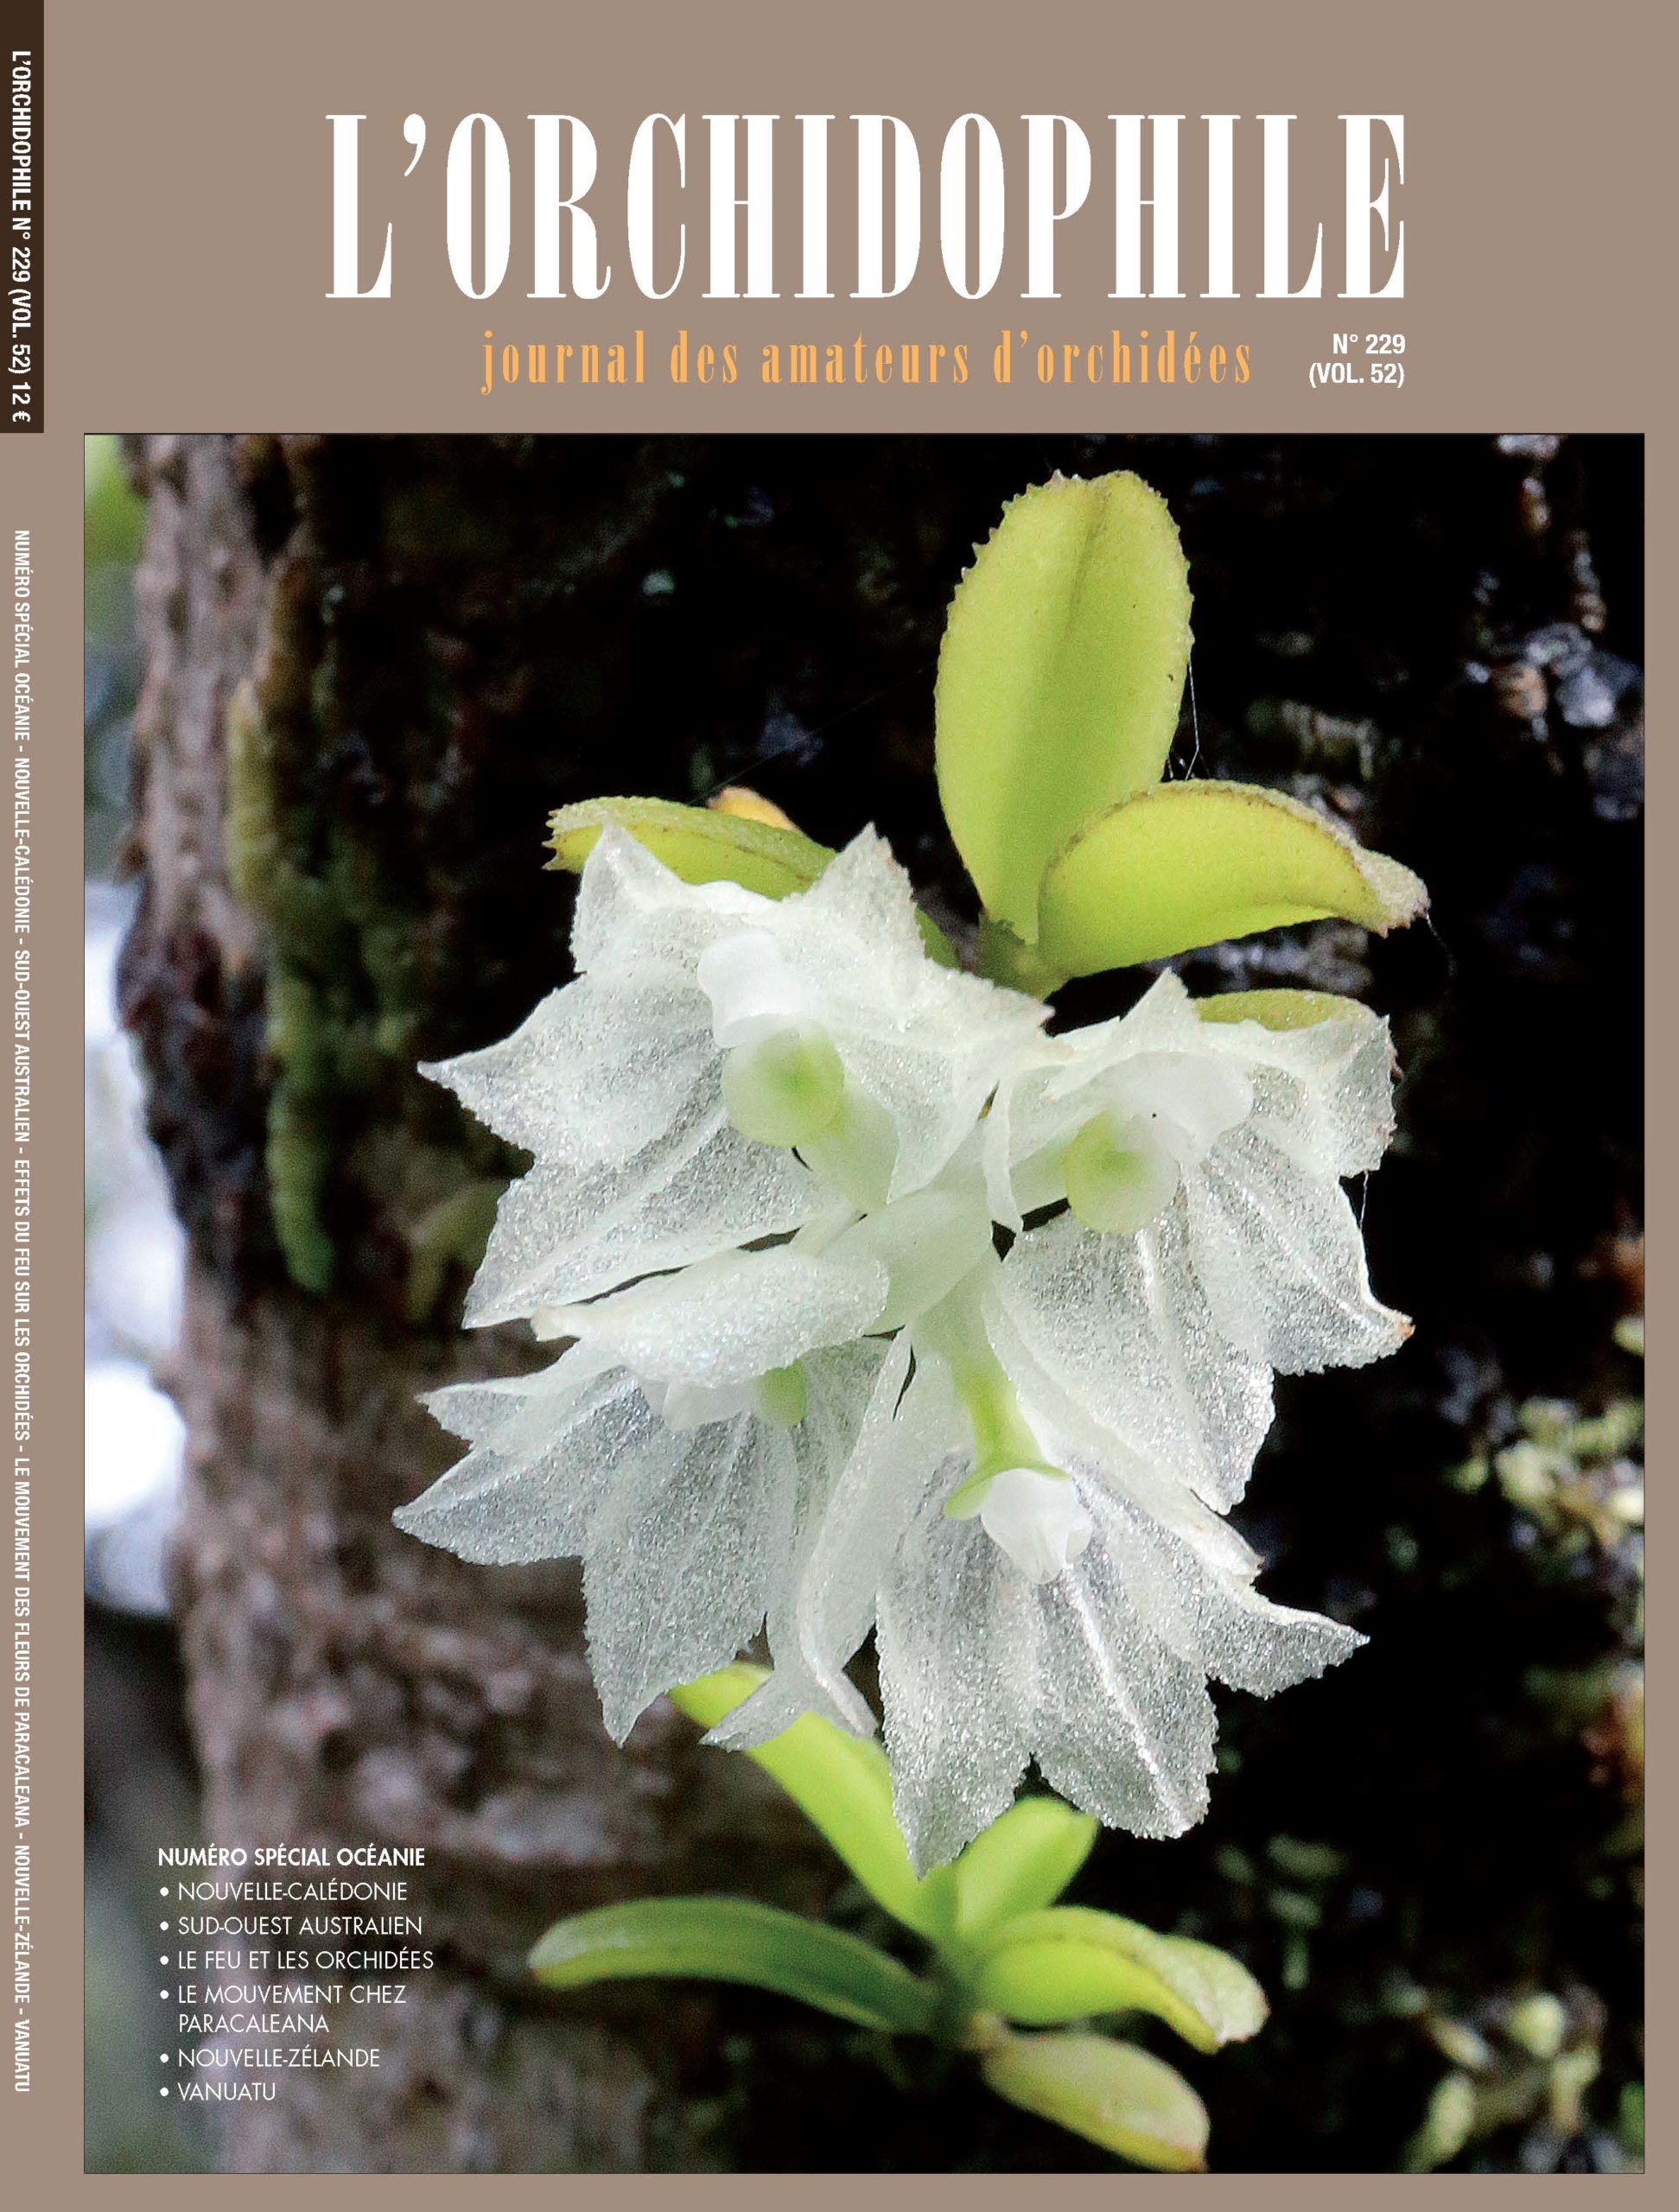 Couverture Orchidophile 229